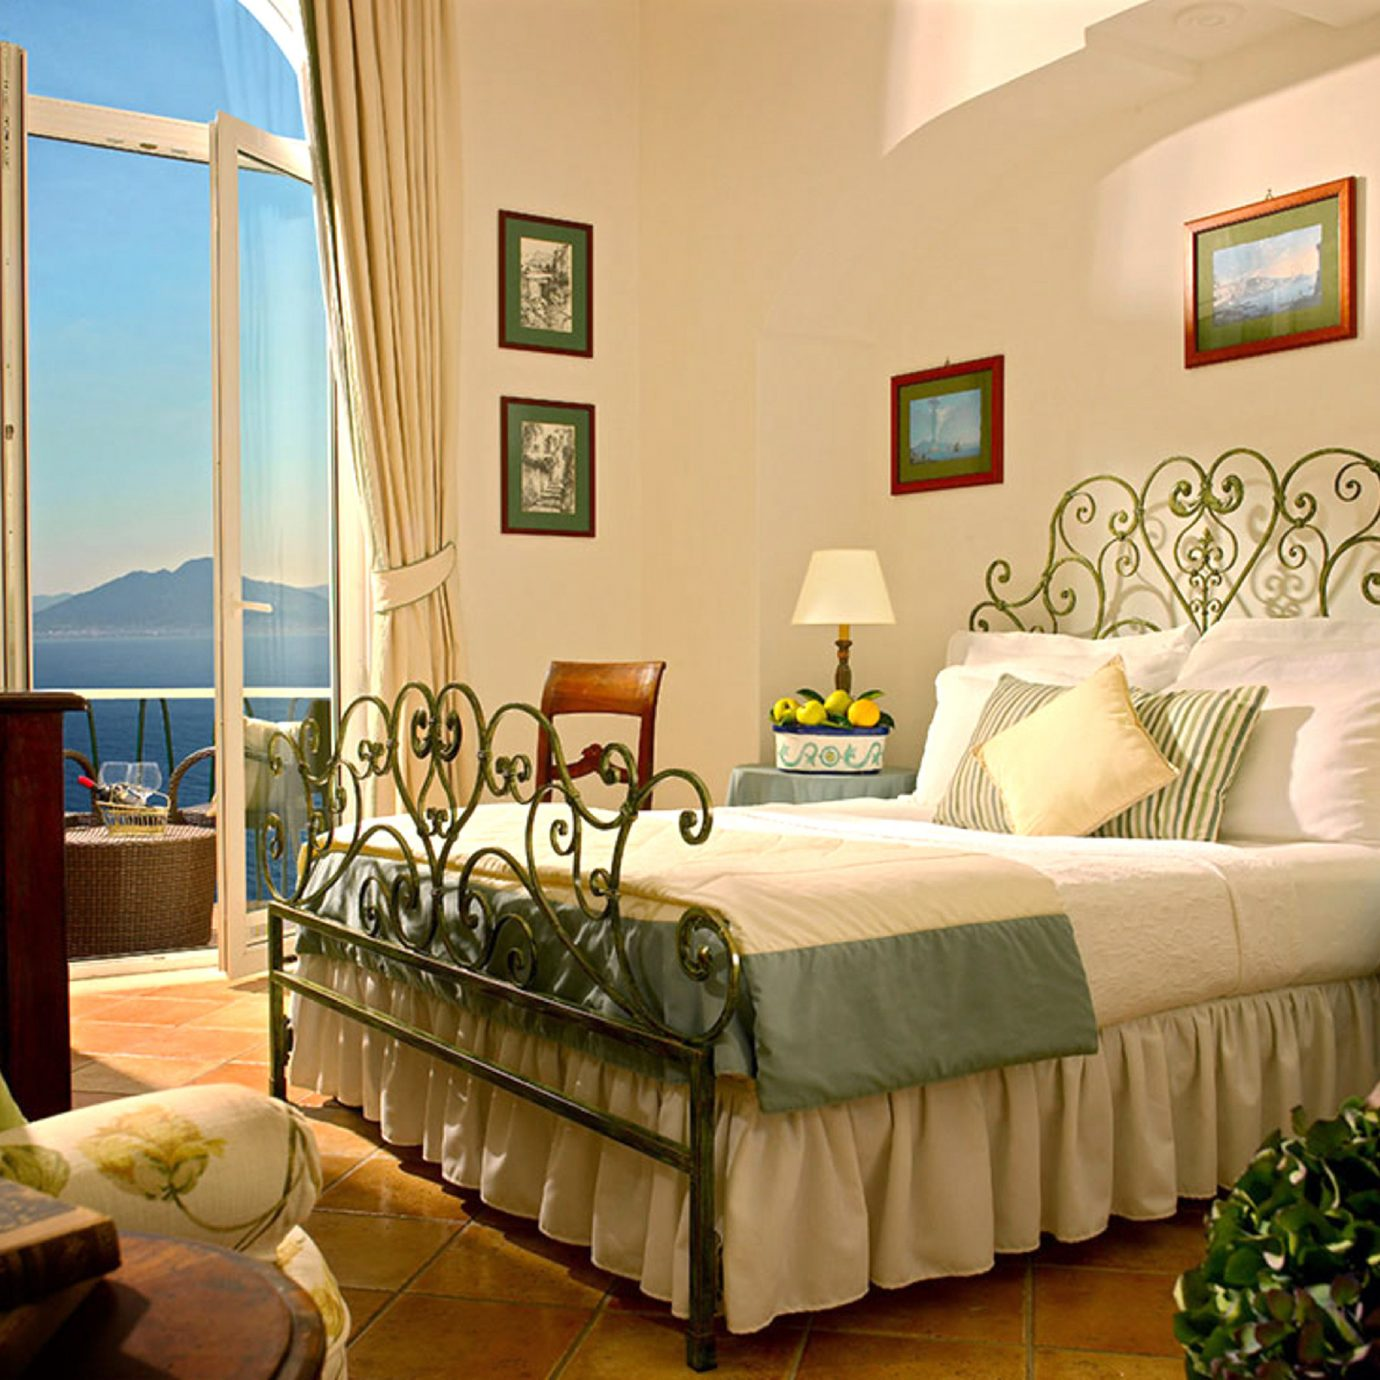 Bedroom Elegant Honeymoon Luxury Romantic Waterfront sofa property living room home Suite cottage Villa